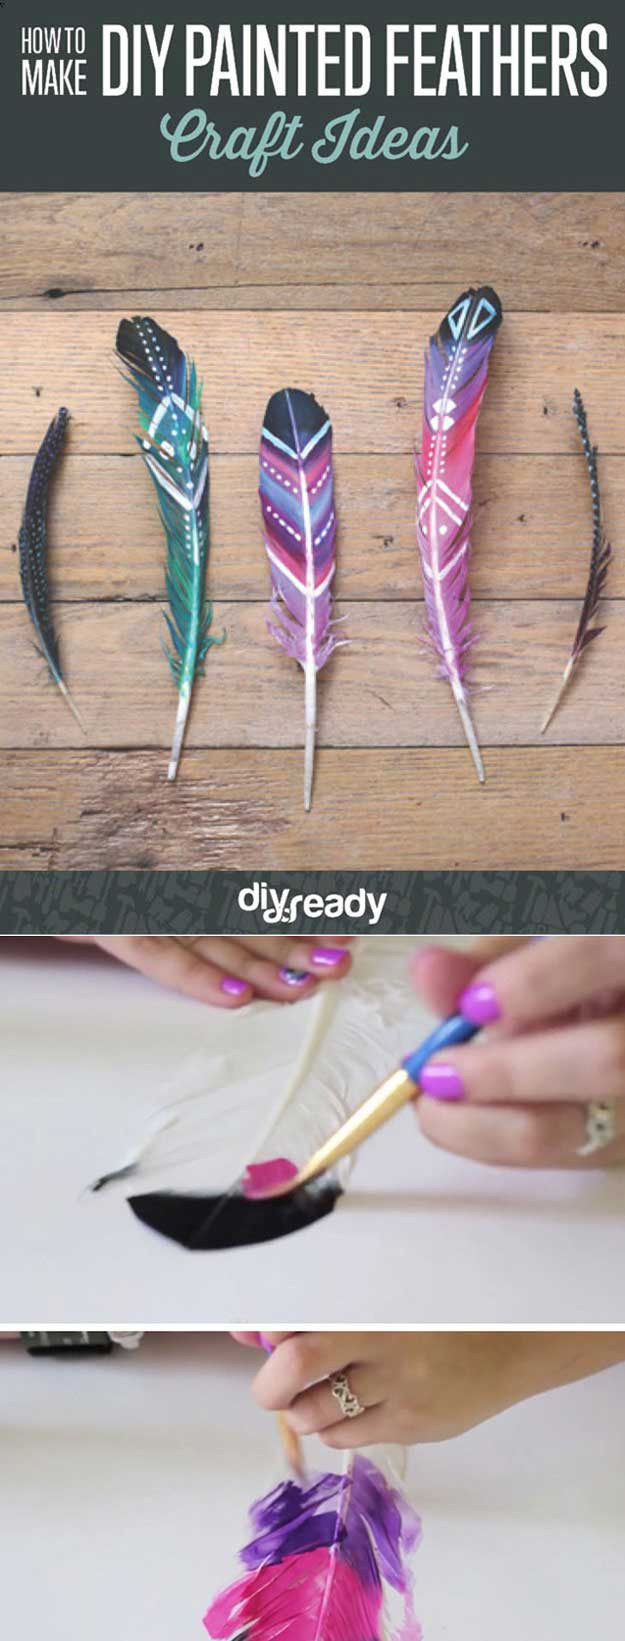 Best ideas about Craft Ideas For Teens . Save or Pin Teen DIY Projects for Girls DIY Projects Craft Ideas & How Now.